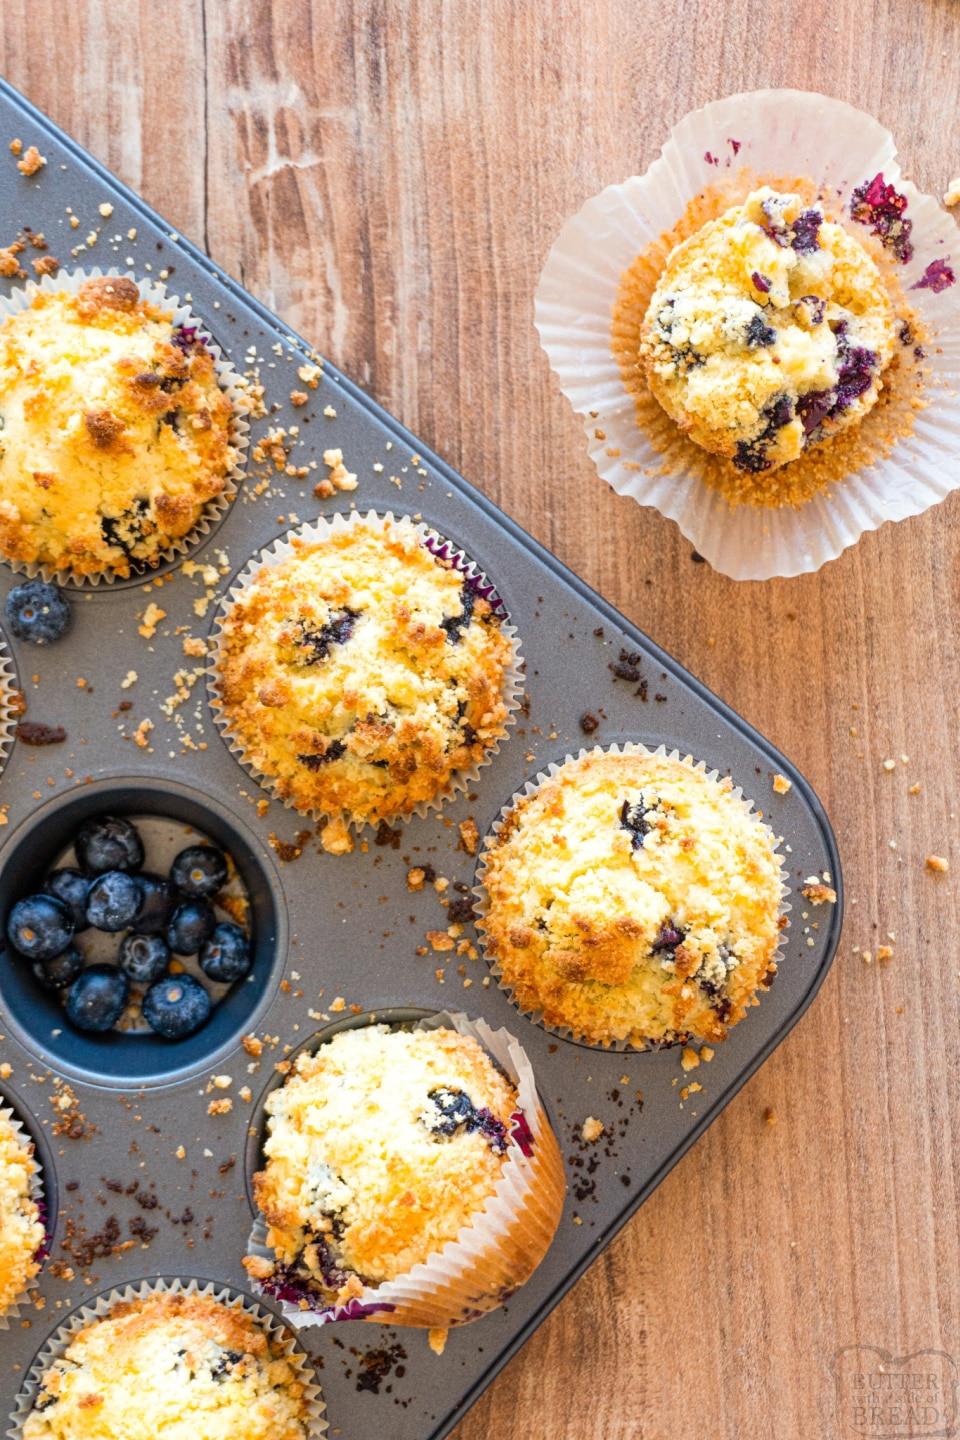 How to make Bakery Style Blueberry Muffins